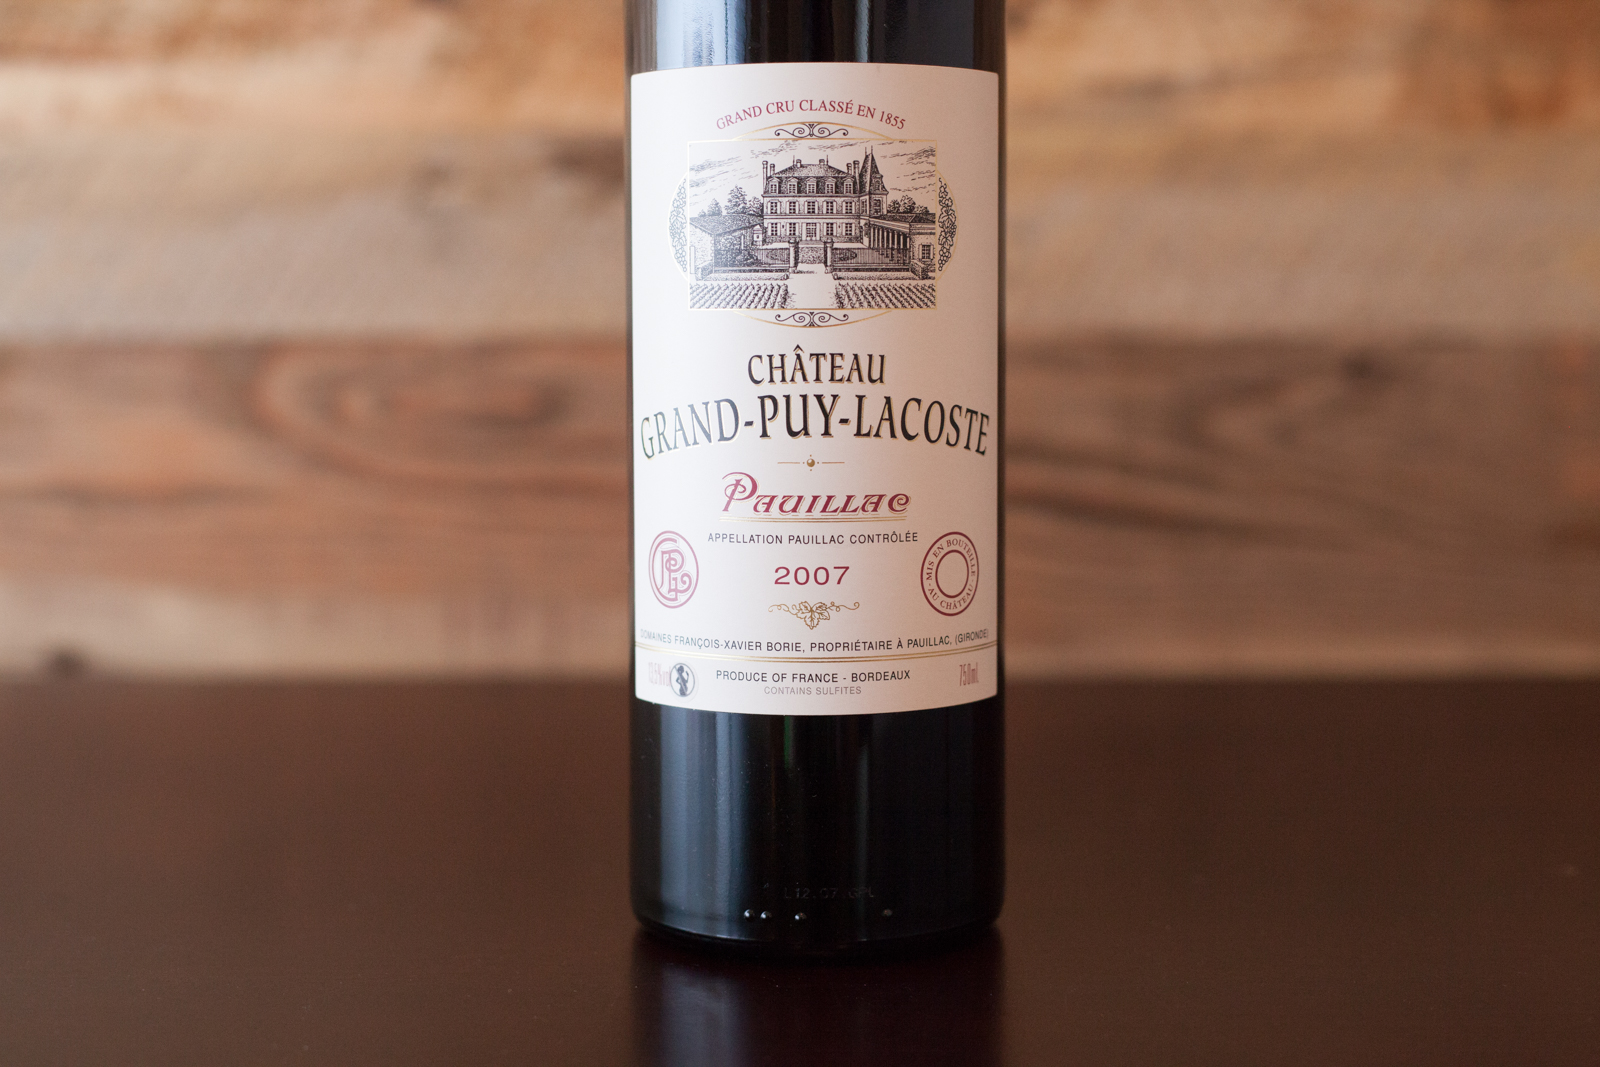 2007 Château Grand-Puy-Lacoste Pauillac bottle shot. ©Kevin Day / Opening a Bottle